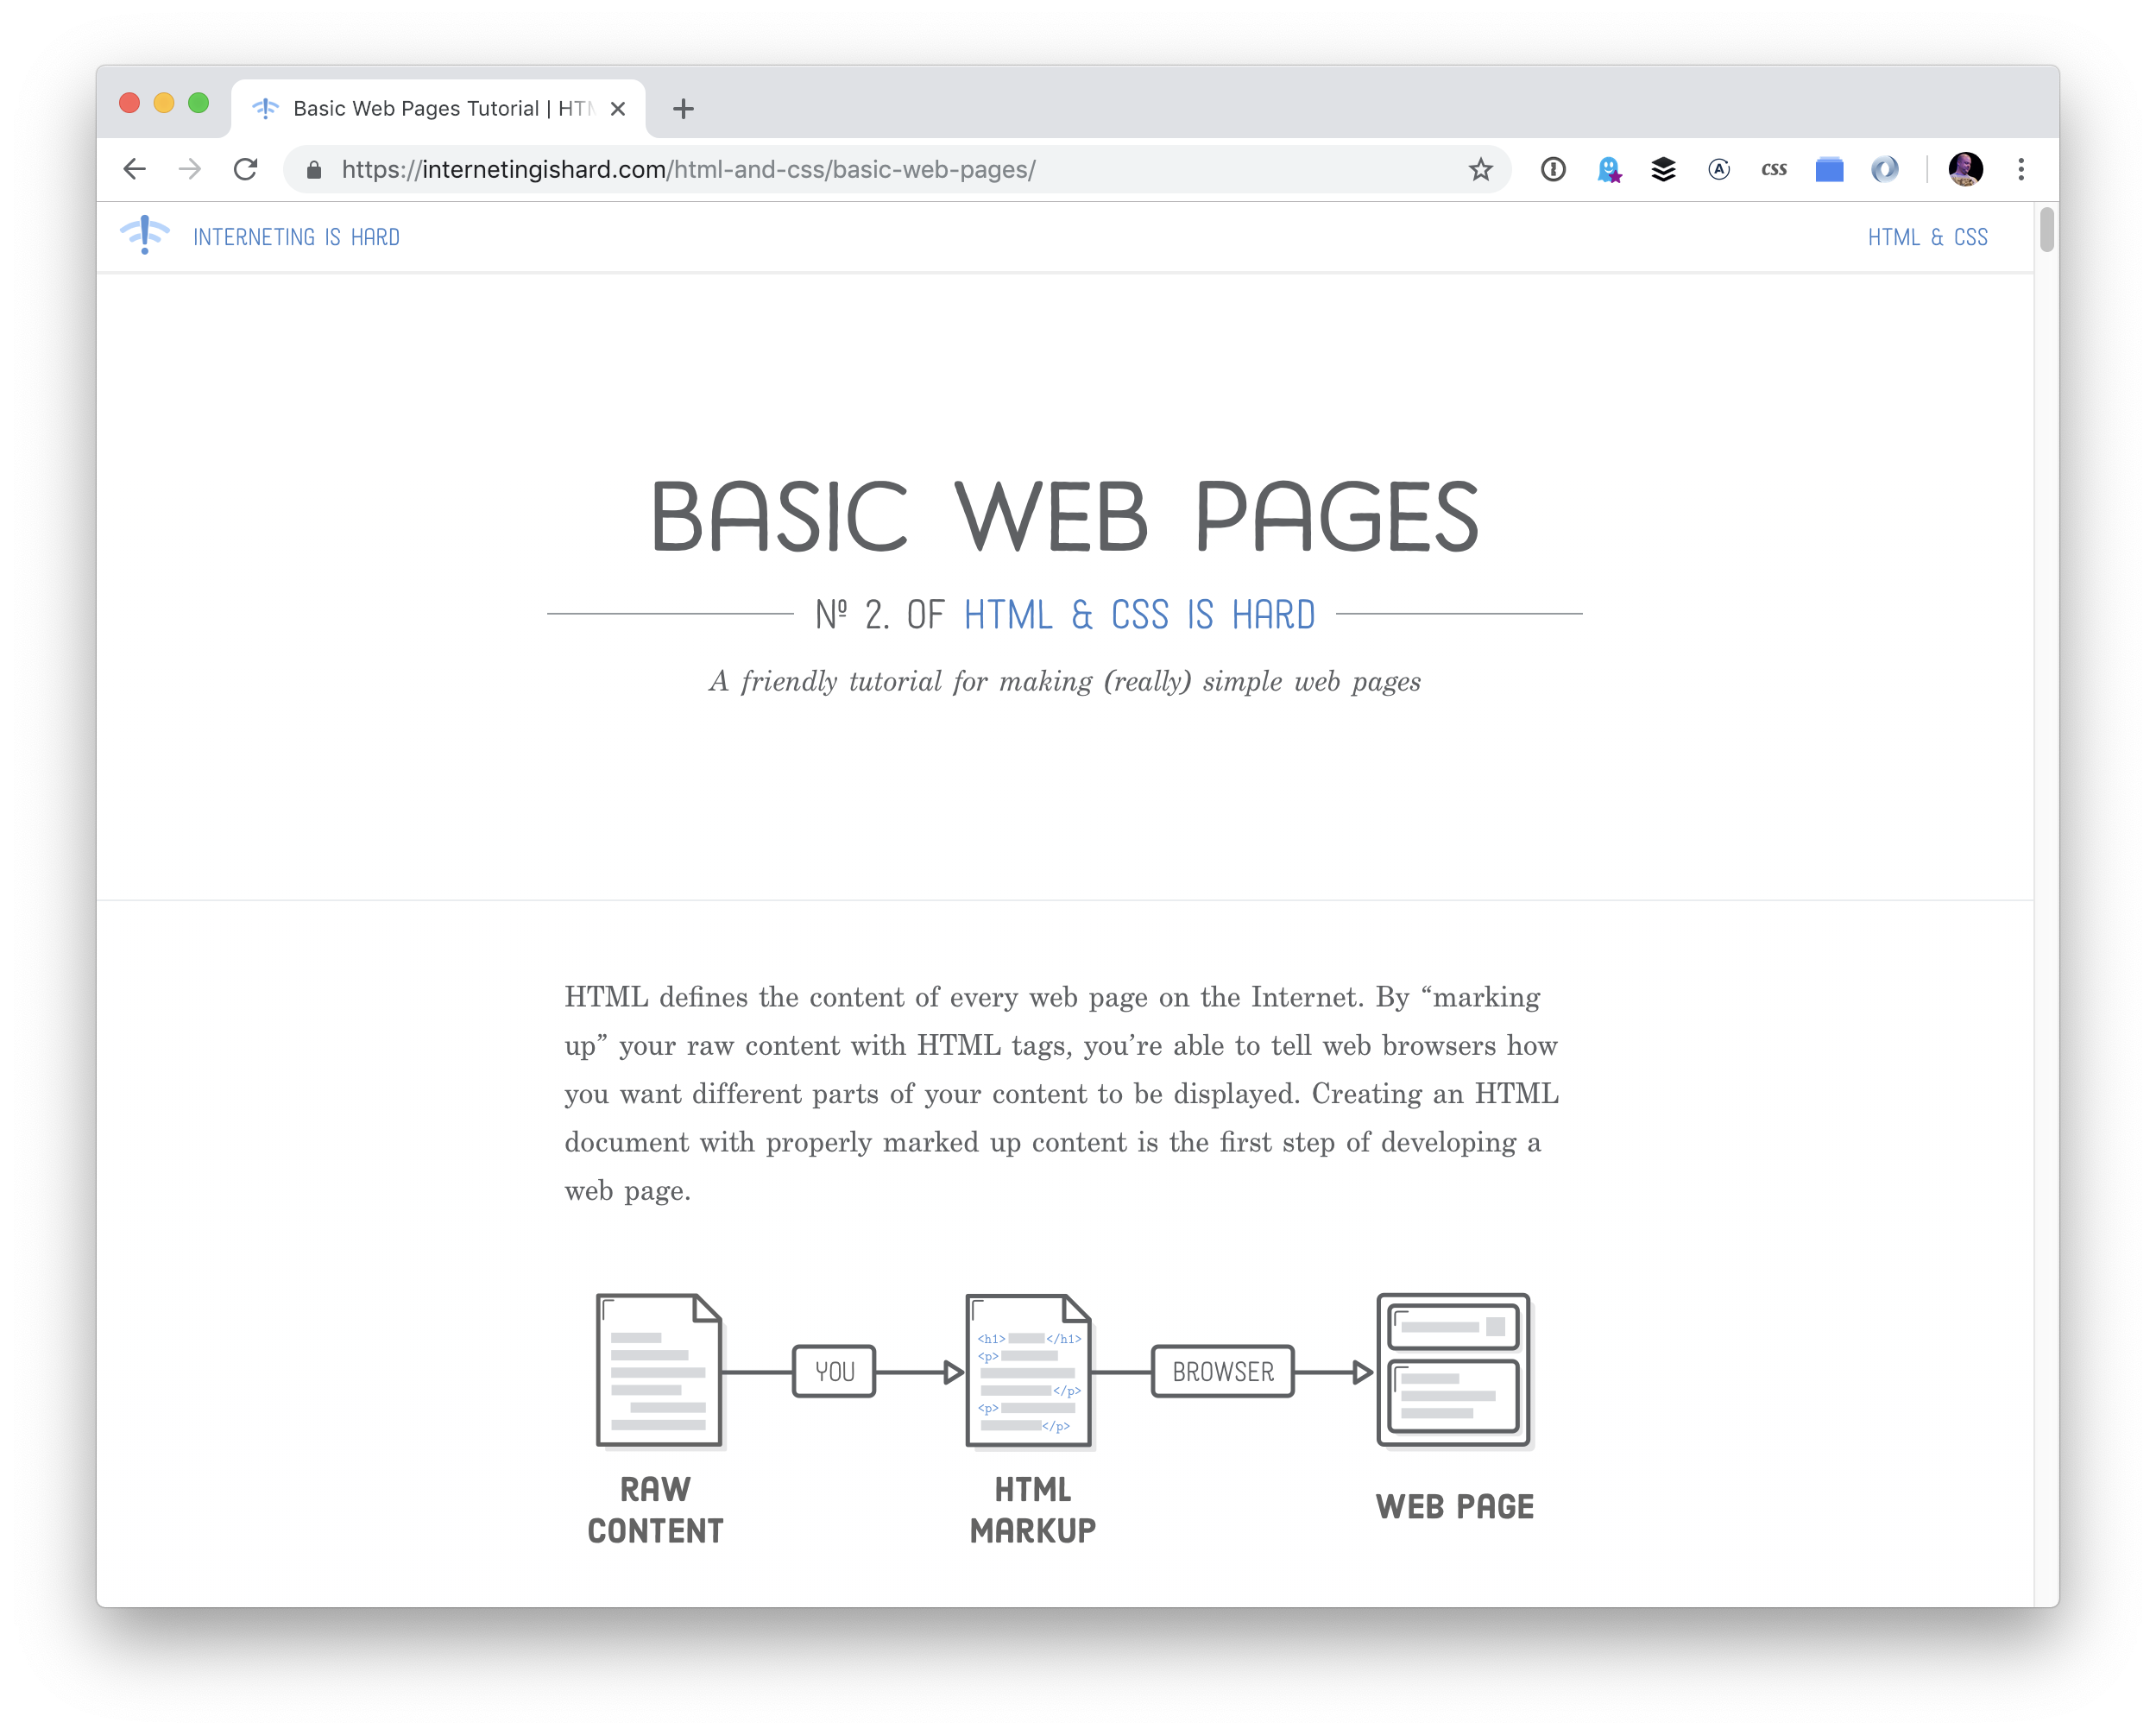 A screenshot of a webpage with a white background and large heading that says Basic Web Pages.